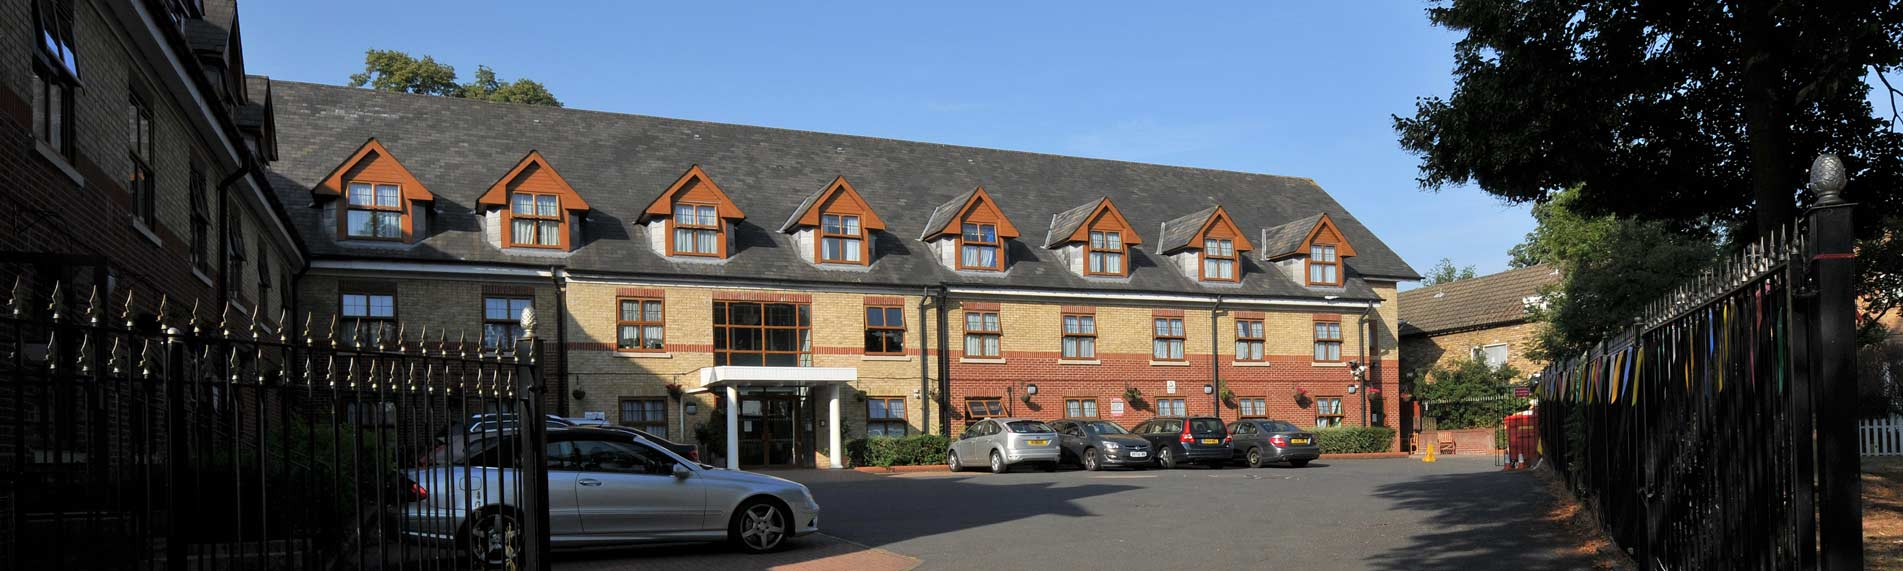 Excelcare-Limetree-Care-Home-Banner.jpg